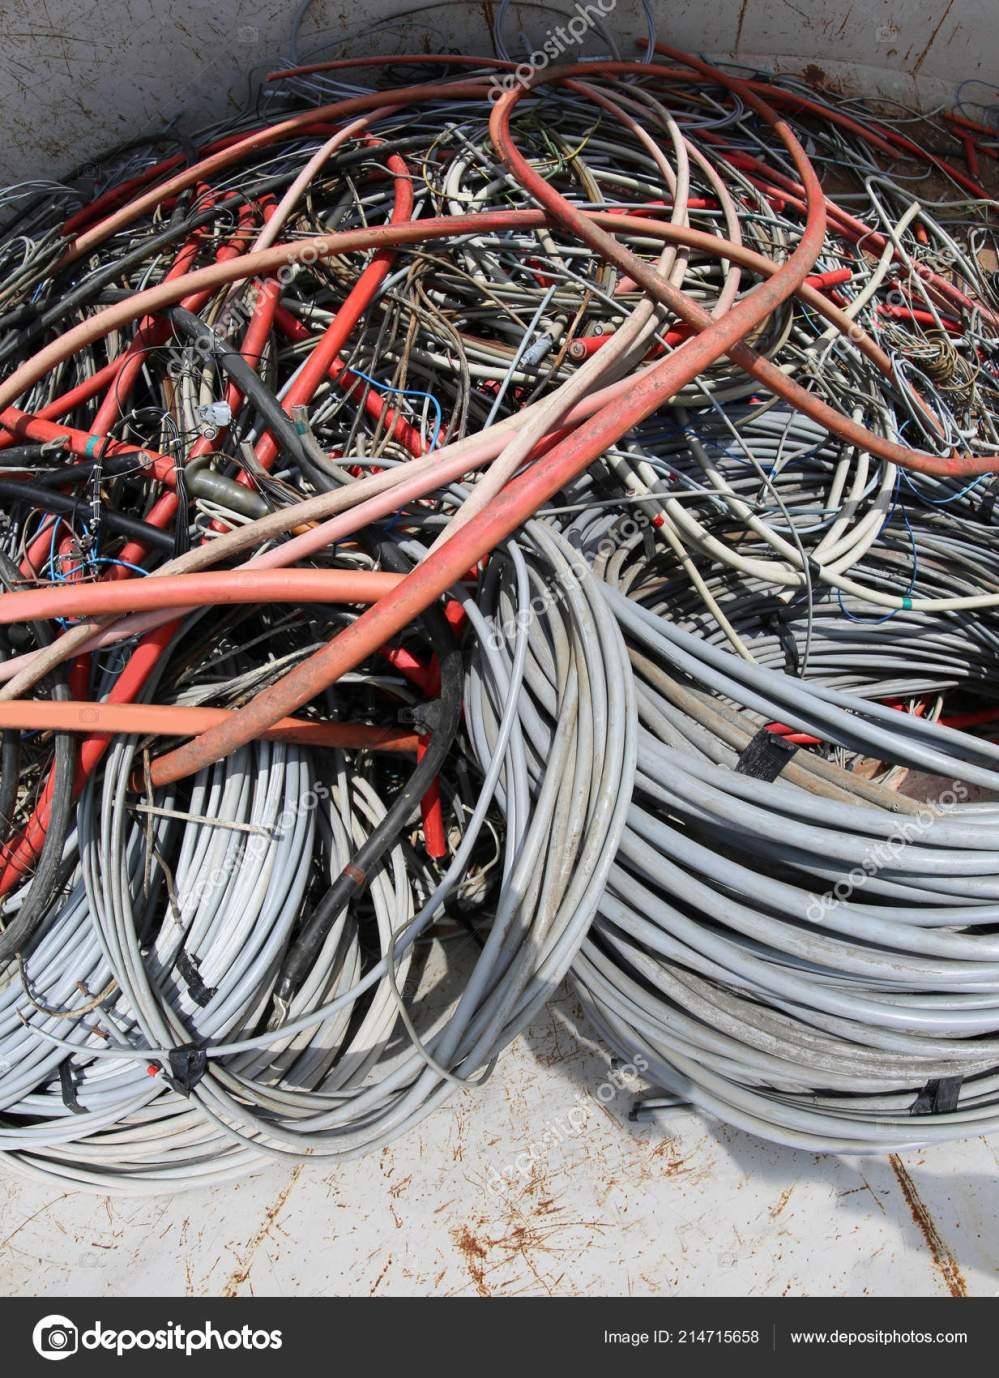 medium resolution of many used electrical cables high voltage wires container stock photo